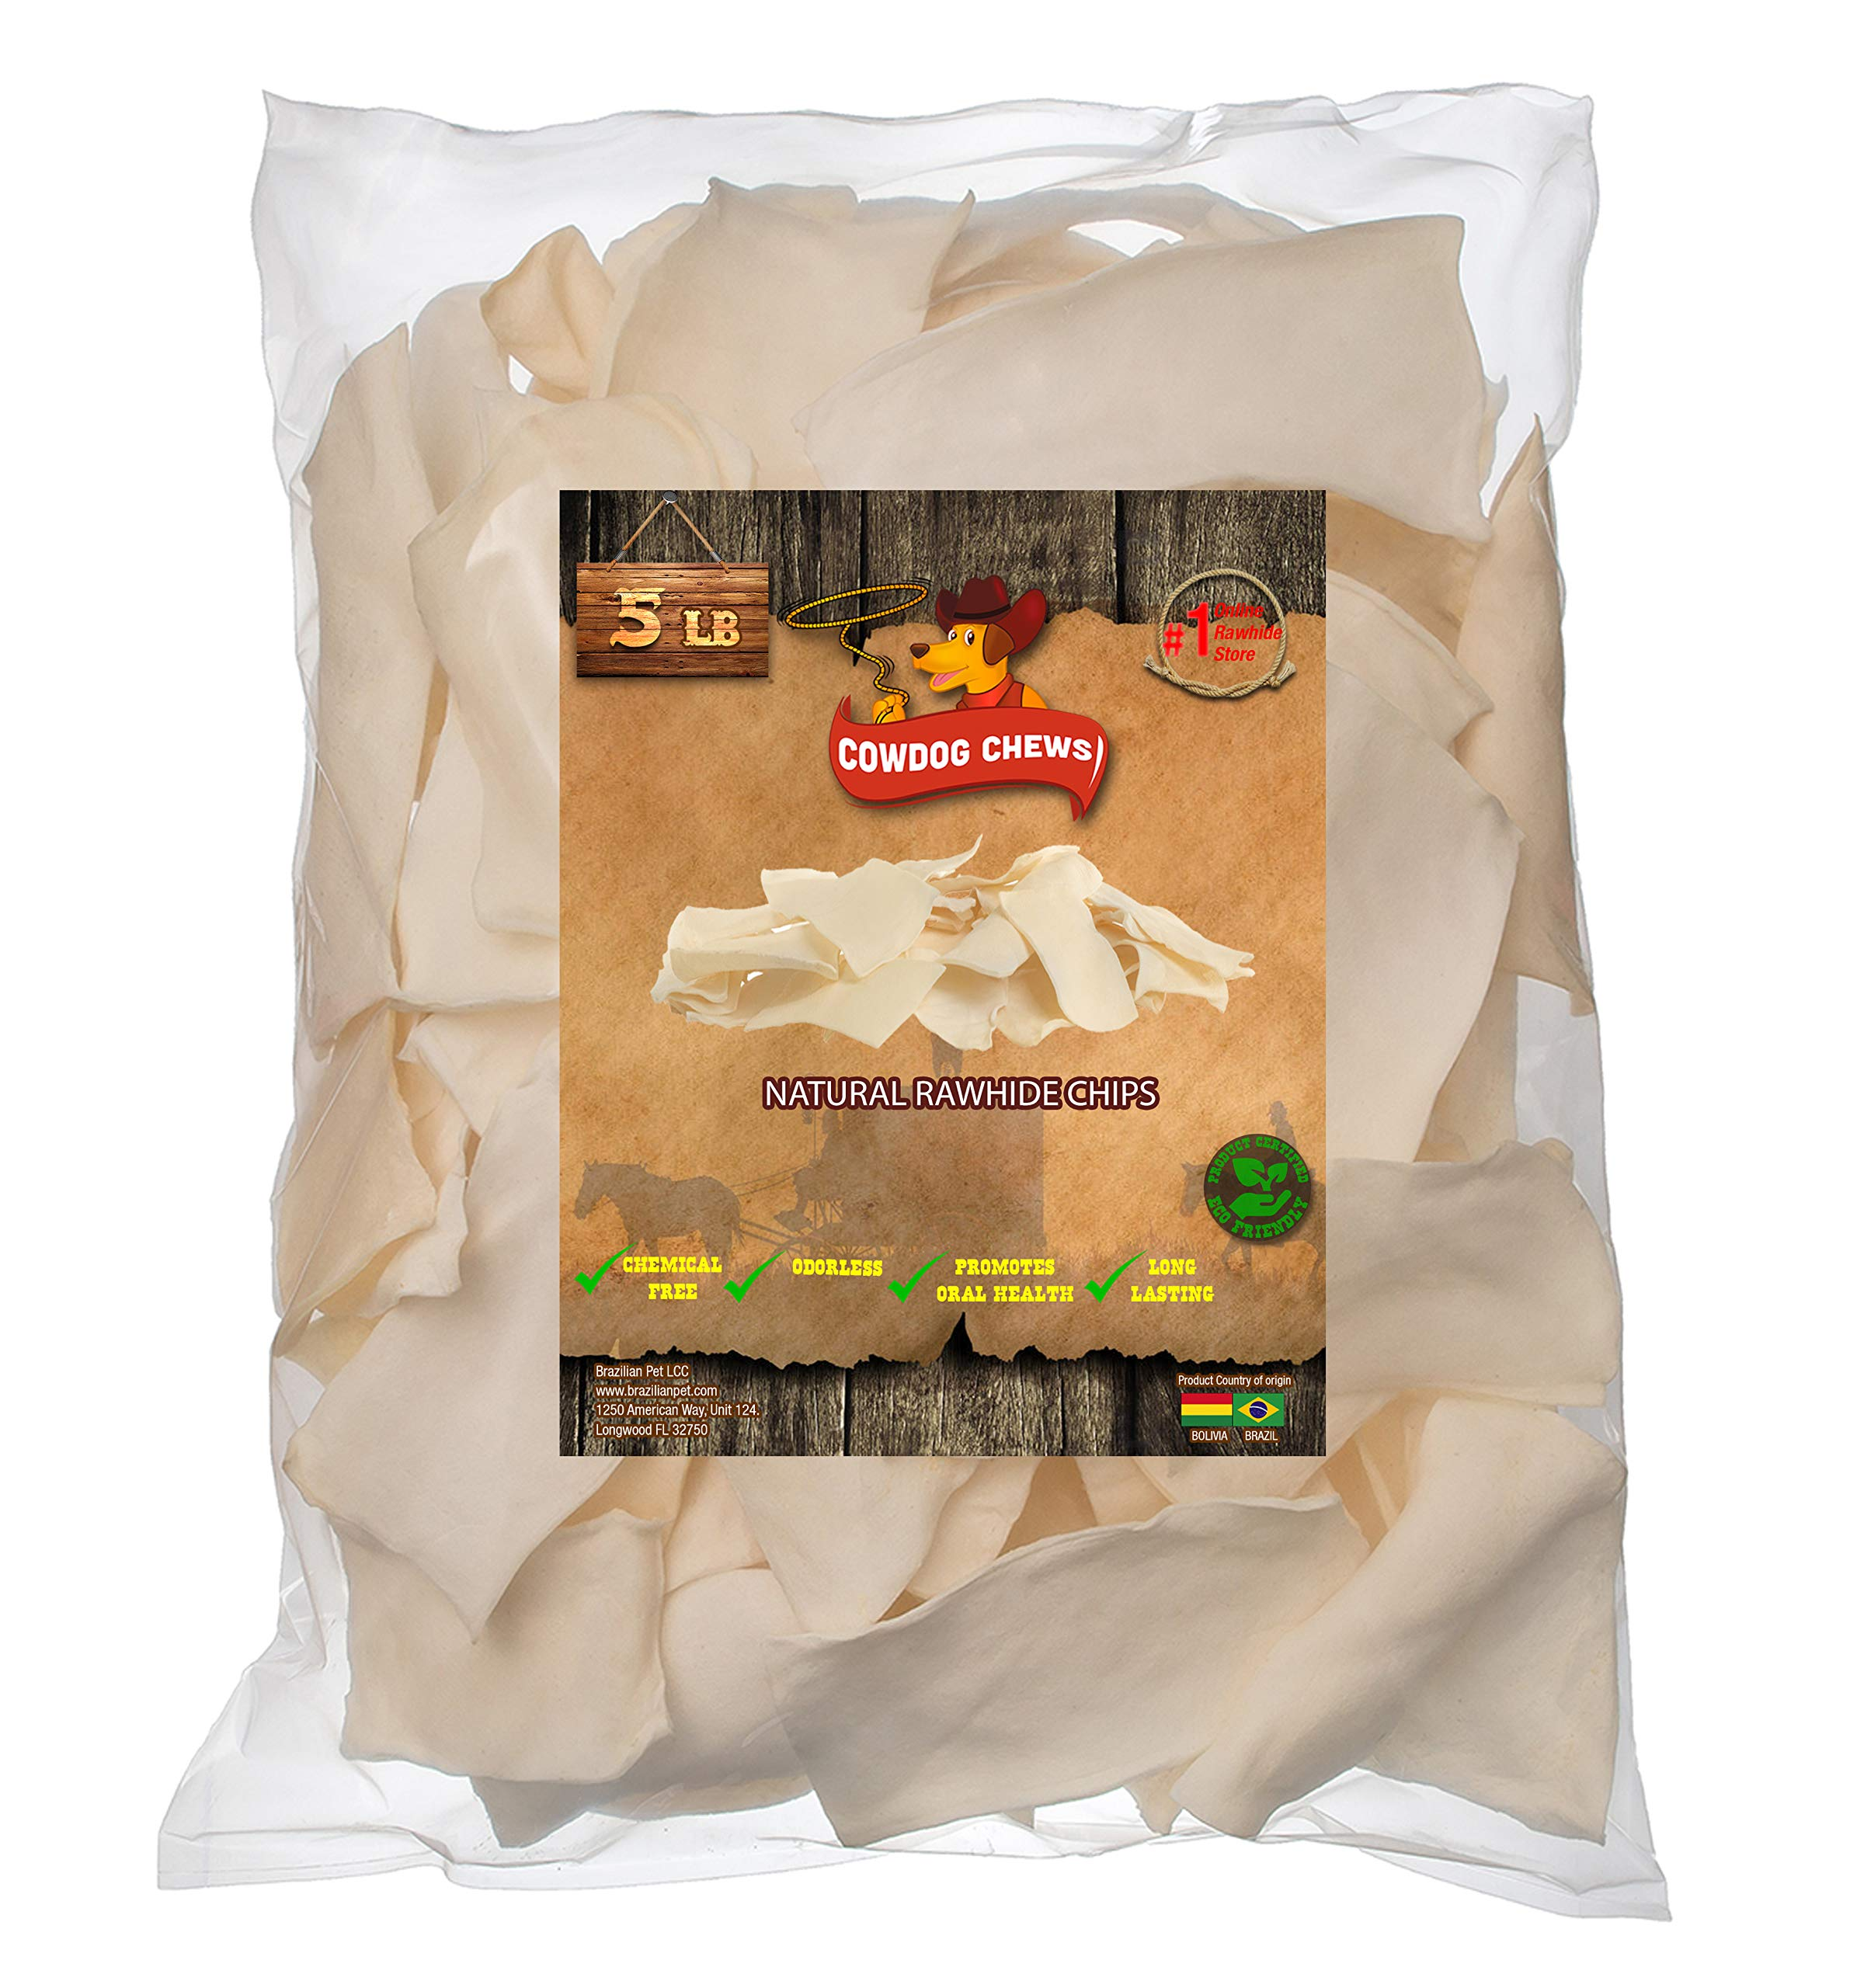 Cowdog Chews Natural Rawhide Chips - Premium Long-Lasting Dog Treats with Thick Cut Beef Hides, Processed Without Additives or Chemicals (5 Pounds) by Cowdog Chews